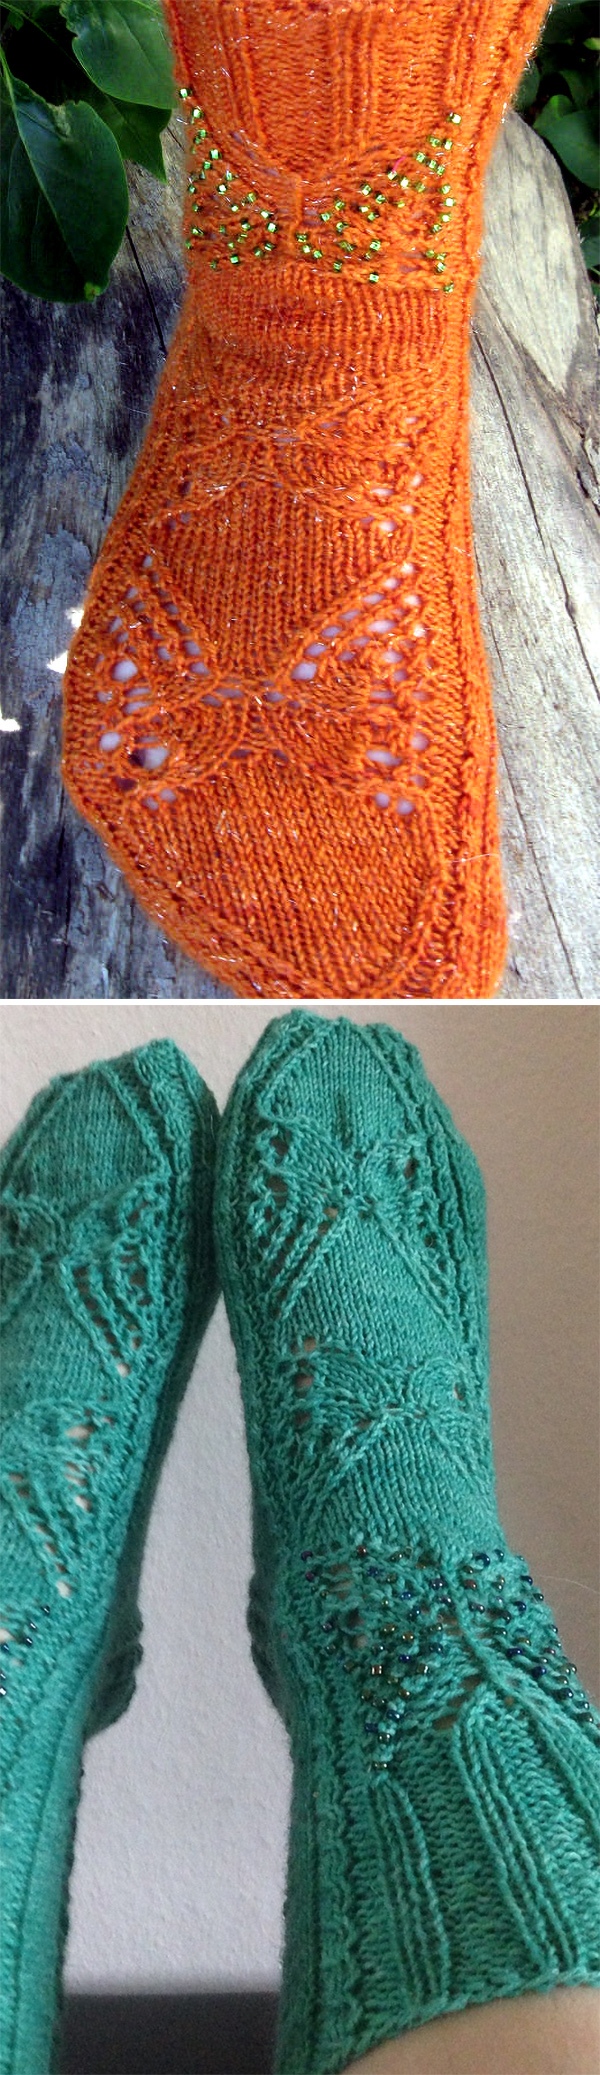 Knitting Socks Design 2017 : Butterfly knitting patterns in the loop